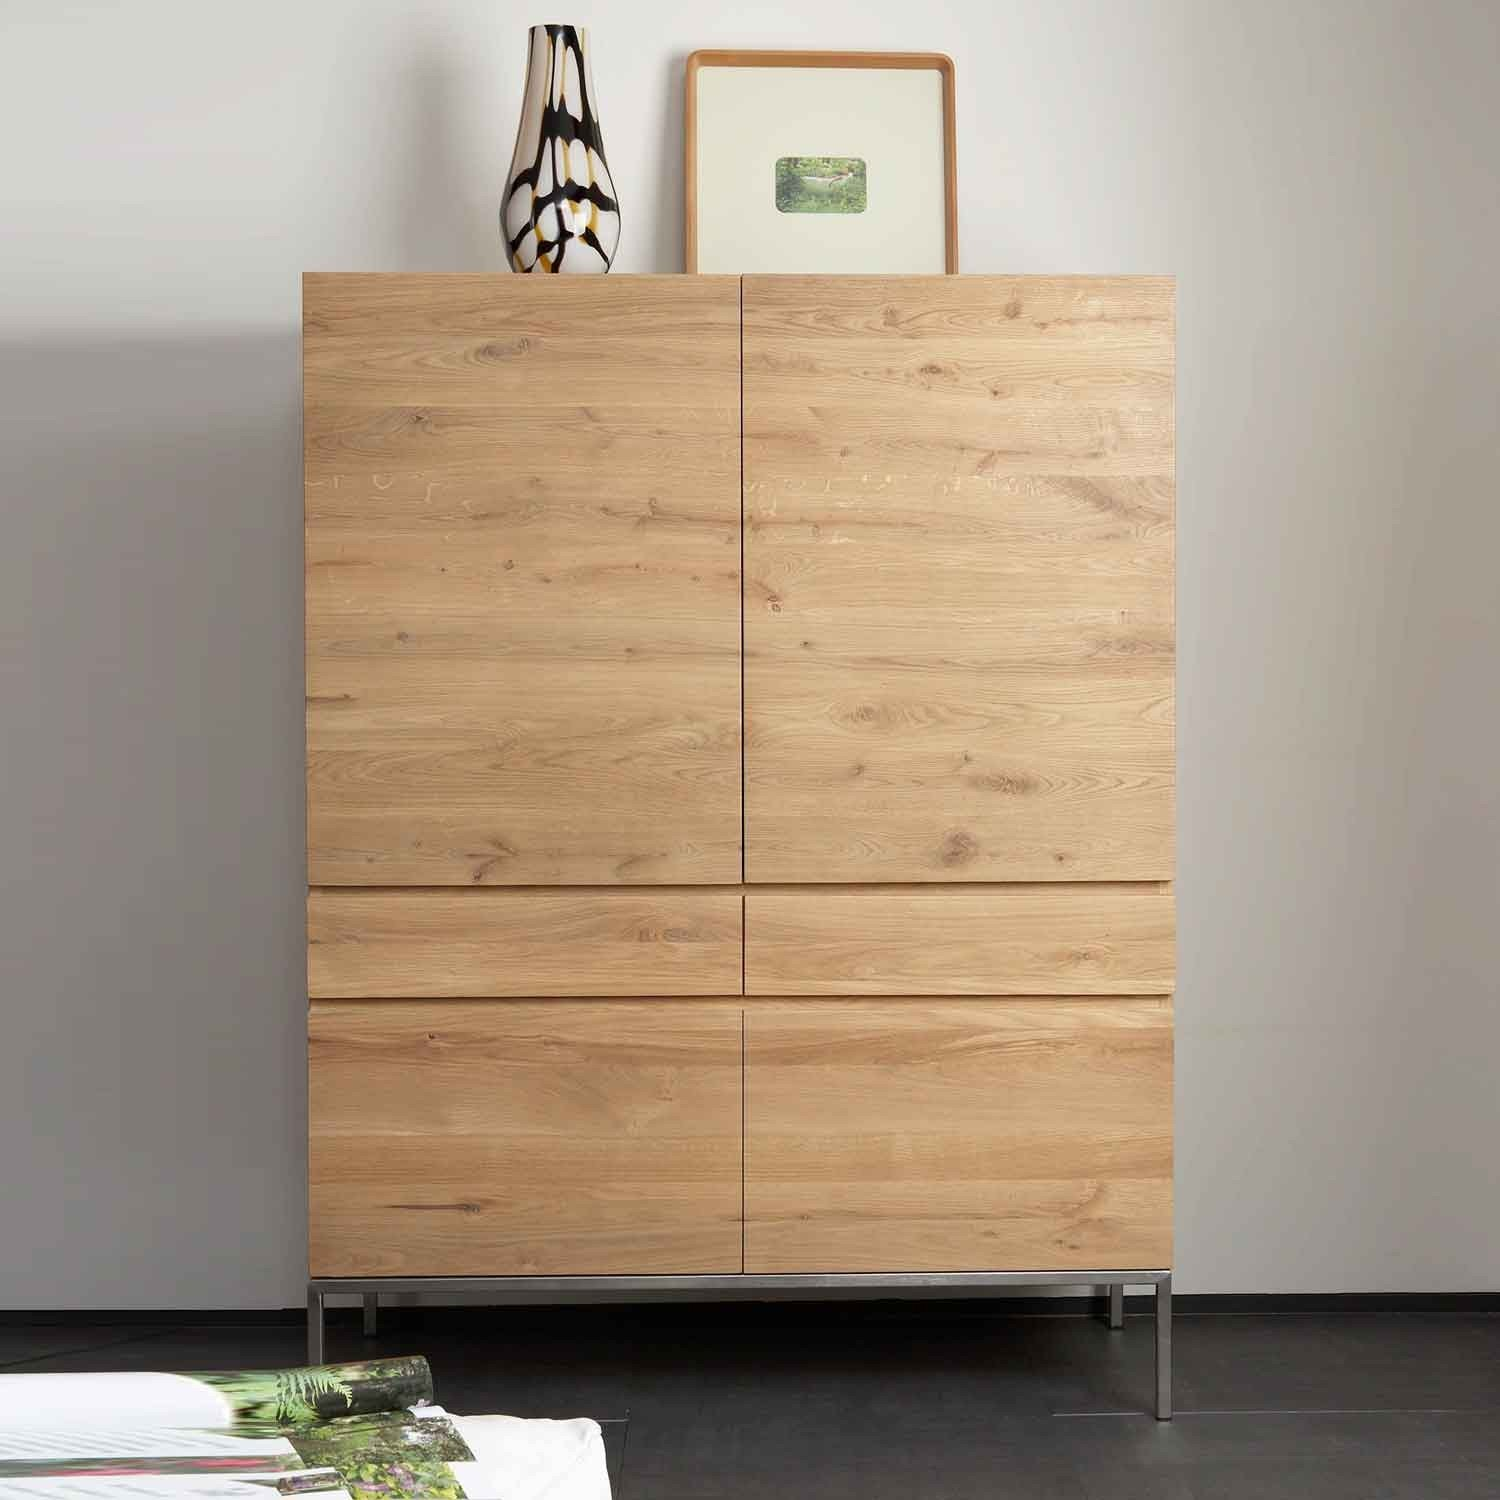 Superieur Ethnicraft Ligna Oak Storage Cupboard 4 Opening Doors / 2 Drawers | Solid  Wood Furniture